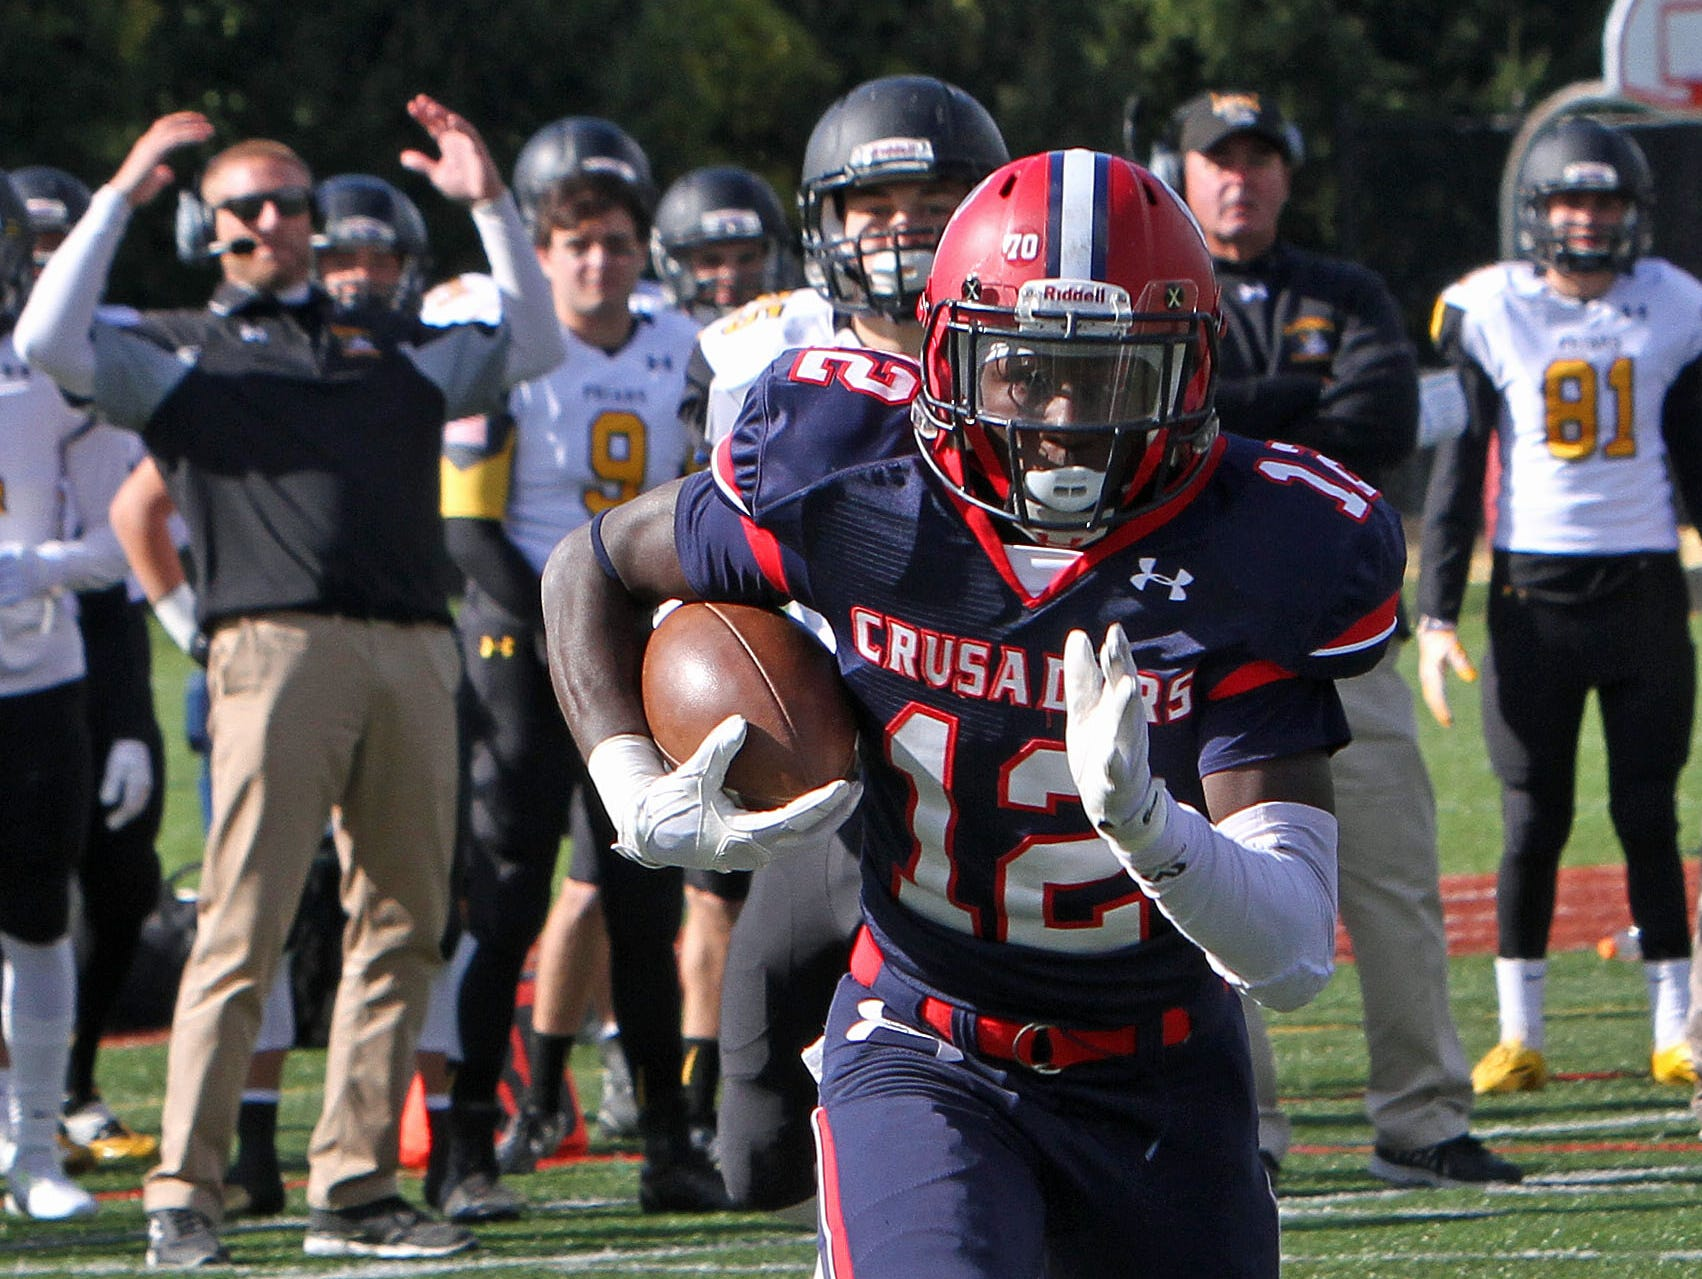 Stepinac's Atrilleon Williams (12) intercepts a pass and runs in for a first half touchdown against Saint Anthony's in a football game at Stepinac High School in White Plains Oct. 17, 2015. Stepinac won the game 49-32.